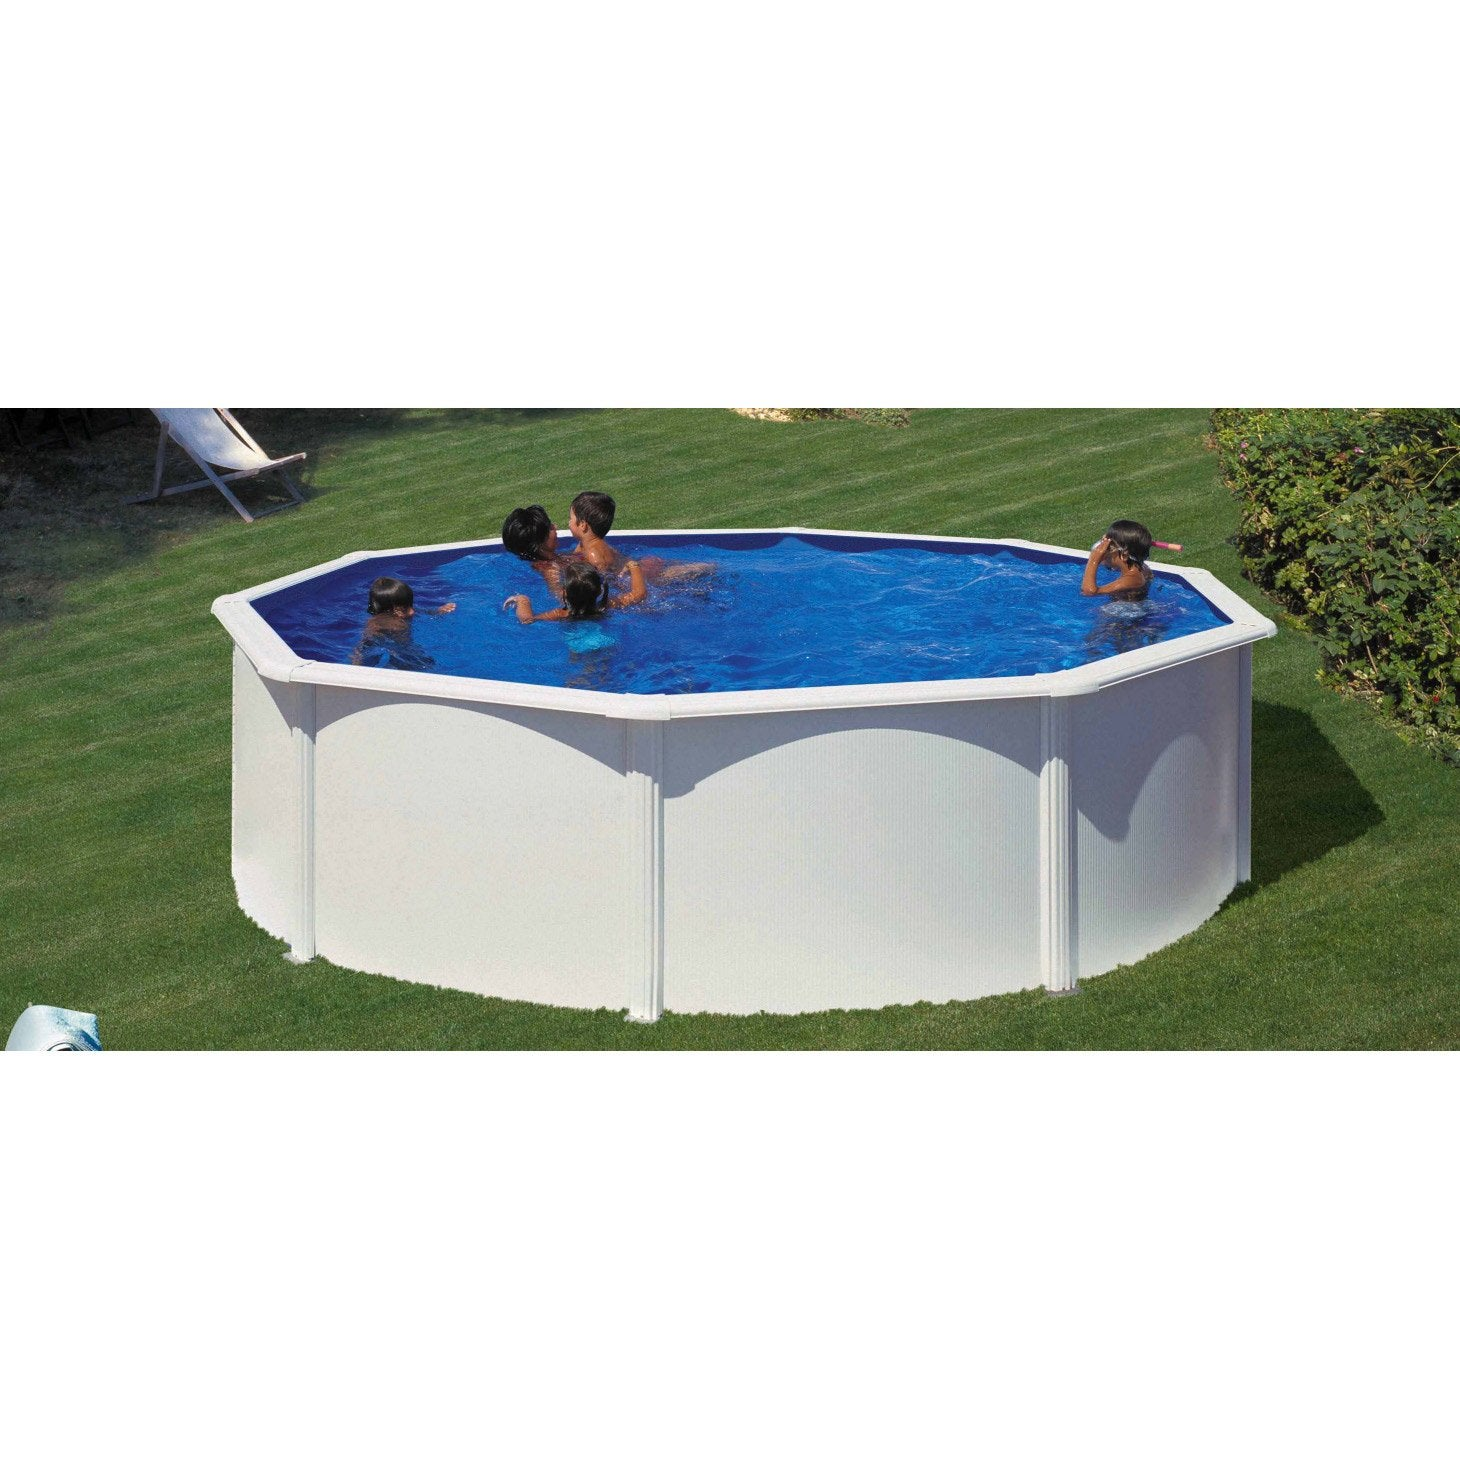 piscine hors sol acier san clara diam 5 5 x h 1 2 m. Black Bedroom Furniture Sets. Home Design Ideas